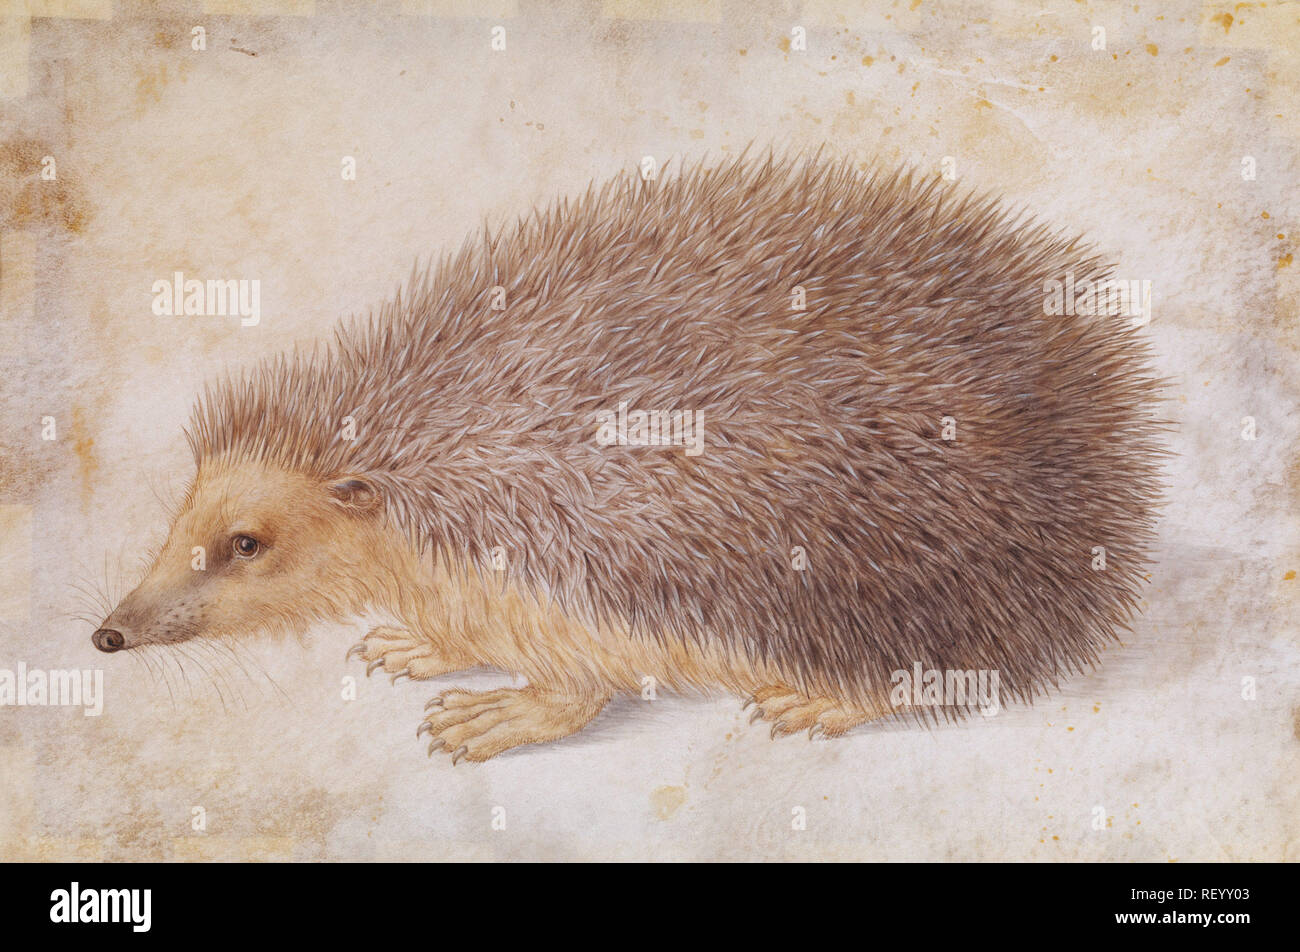 Working Title/Artist: Hoffmann, A Hedgehog   Department: Drawings & Prints Culture/Period/Location:  HB/TOA Date Code:  Working Date:  photography by mma, DP120747.tif retouched by film and media (jnc) 8_29_08 - Stock Image